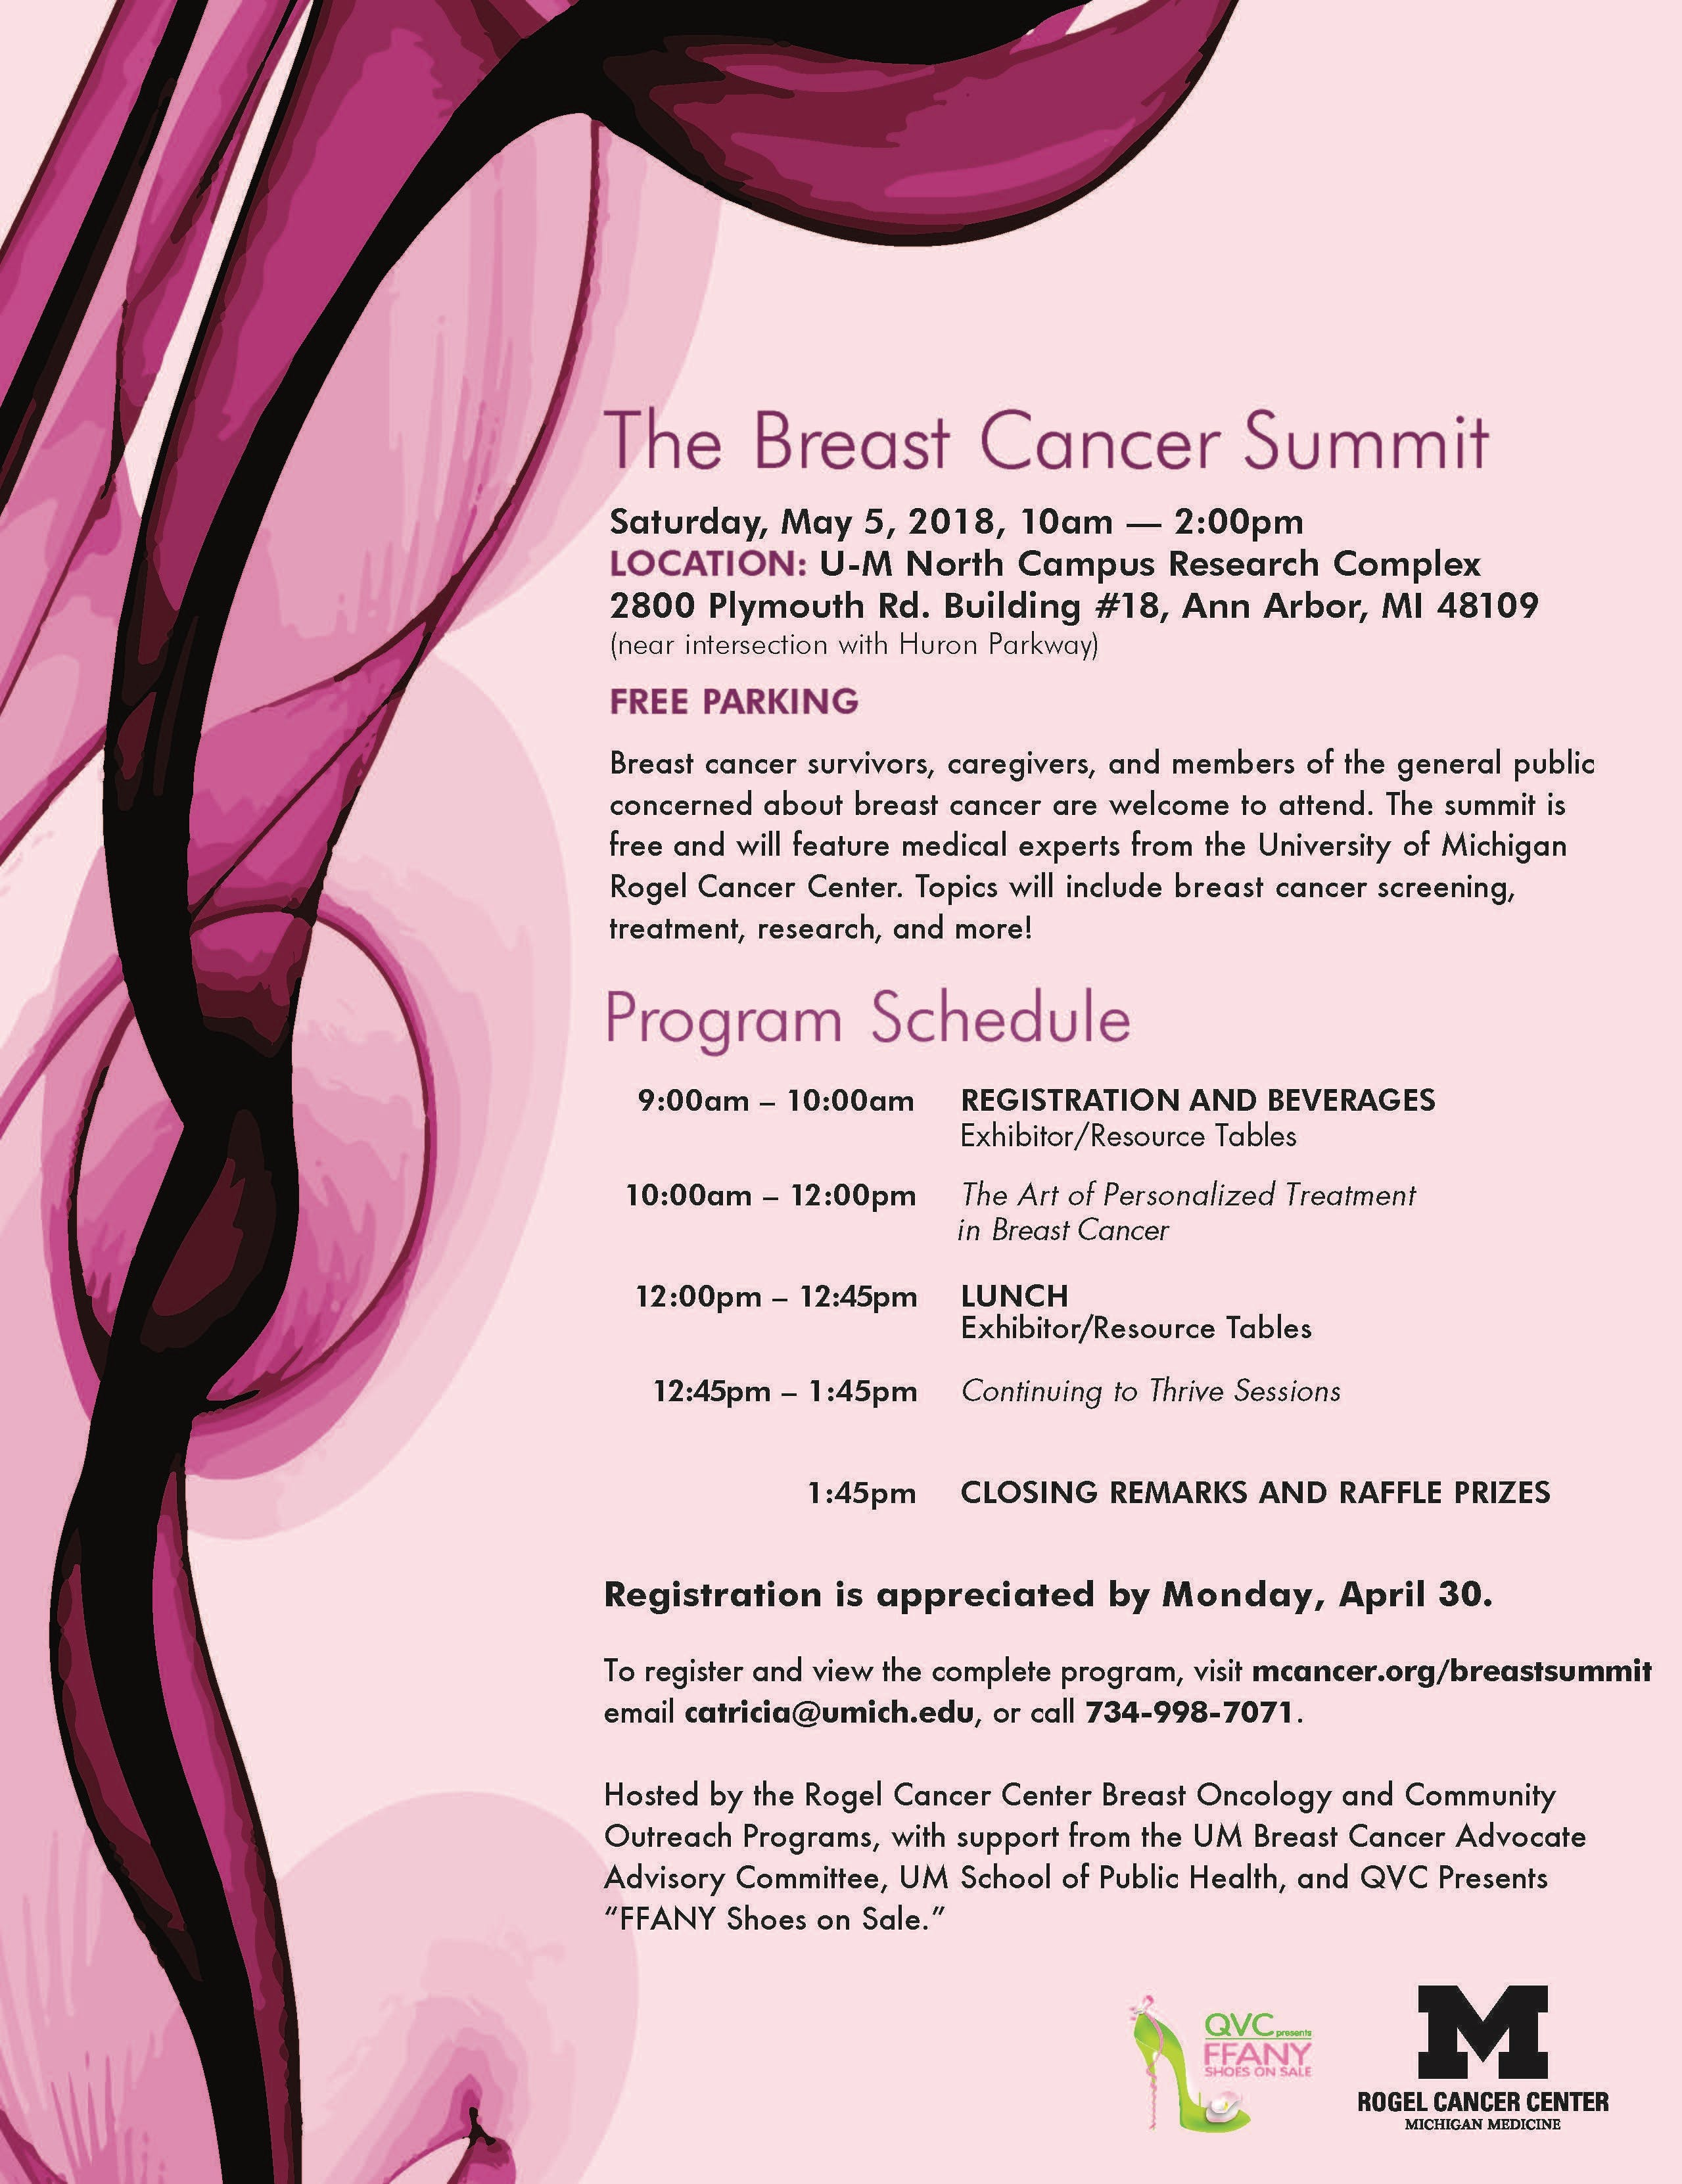 Breast Cancer Summit 2018 at UM North Campus Research